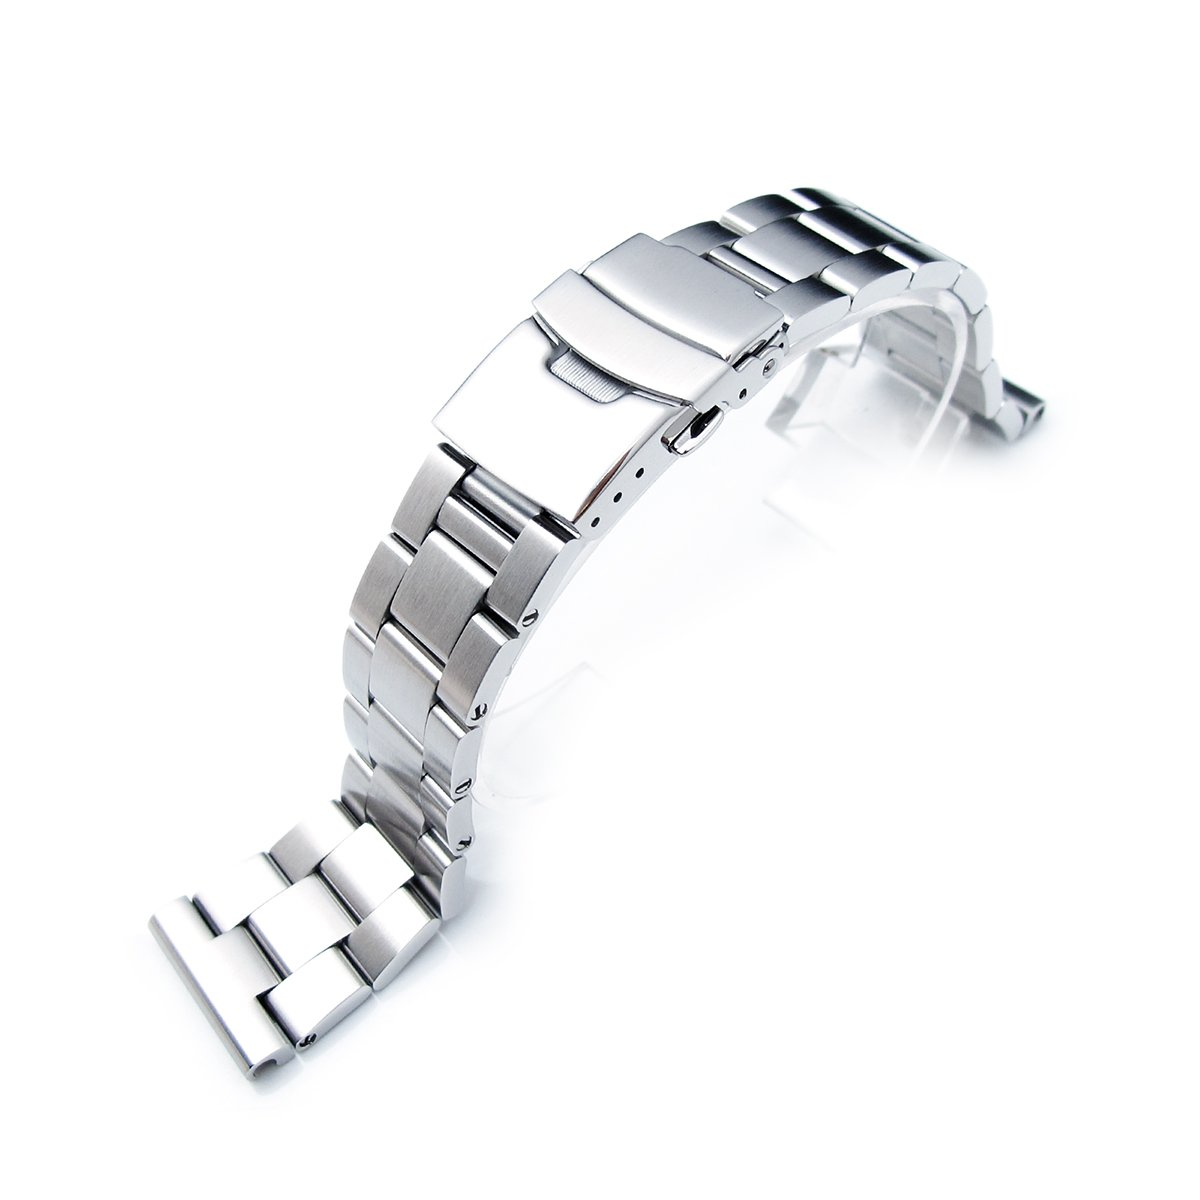 22mm Super Oyster Type II watch bracelet common use for diver watch, straight end by 22mm Metal Band by MiLTAT